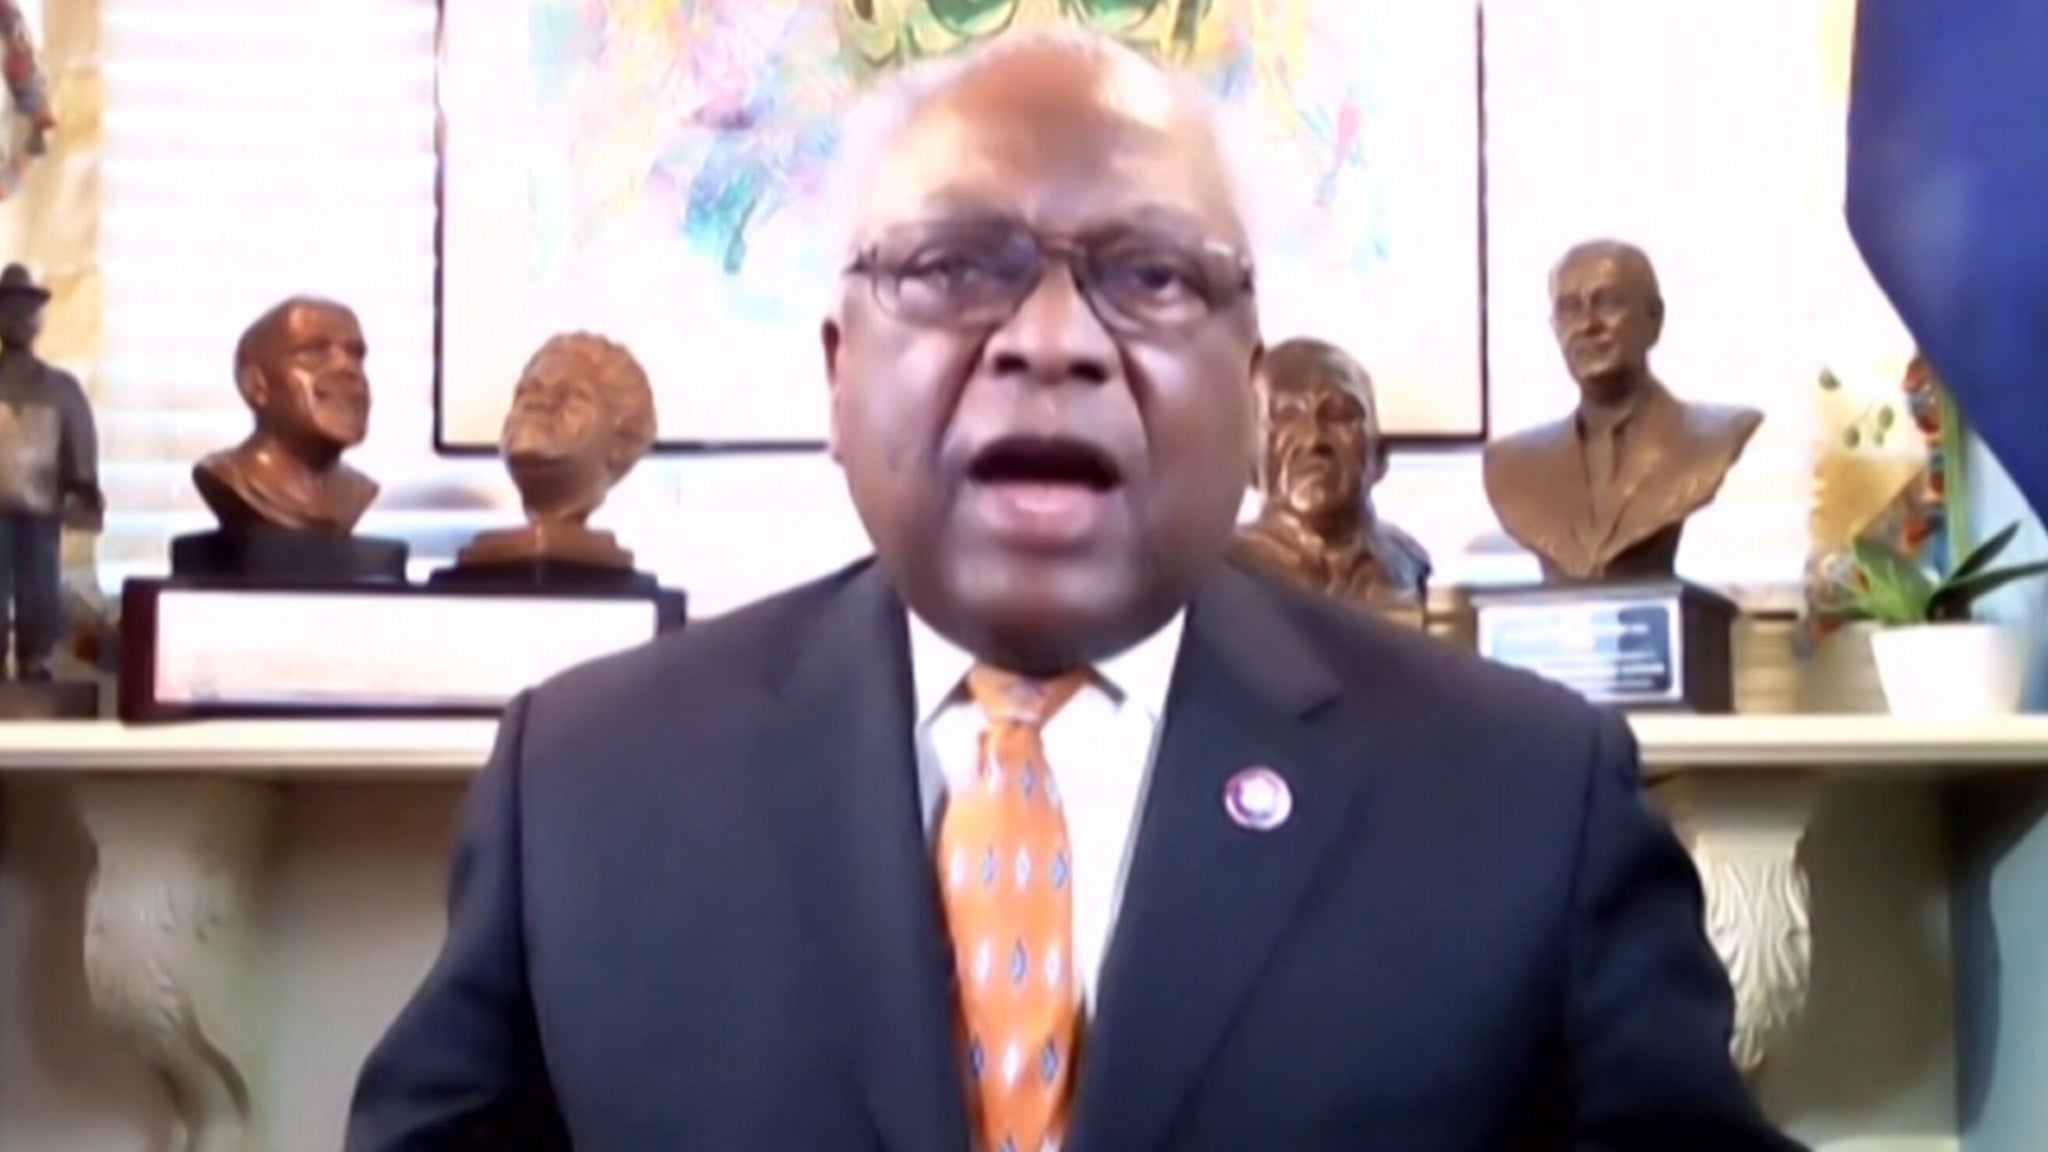 Rep. Jim Clyburn Calls Out GOP Members Attempting to Bring Guns on House Floor